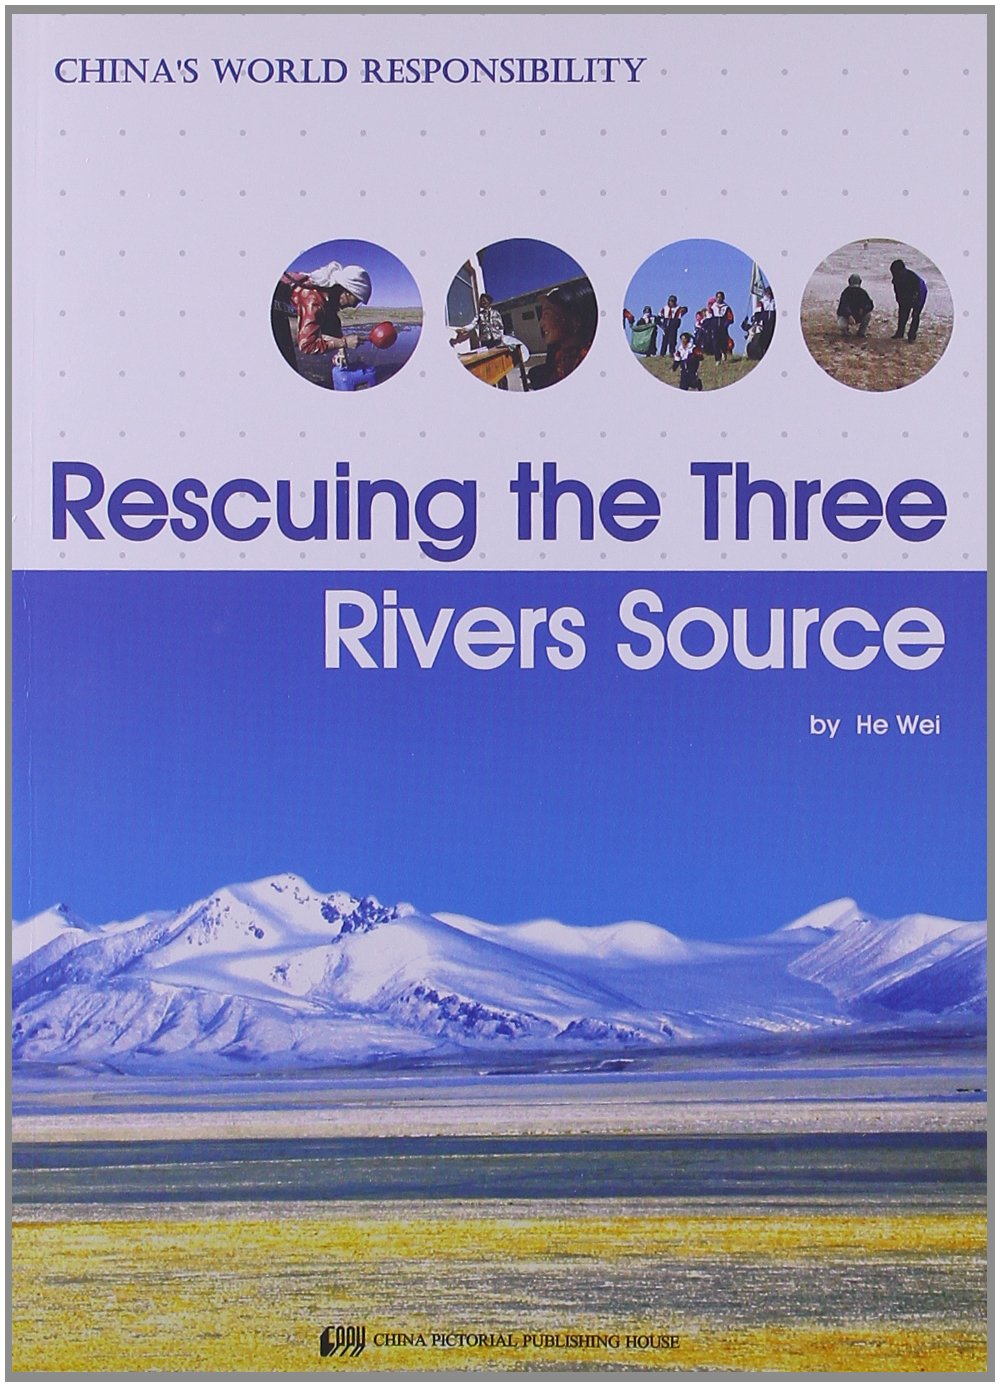 Rescuing the Three Rivers Source - China's World Responsibility